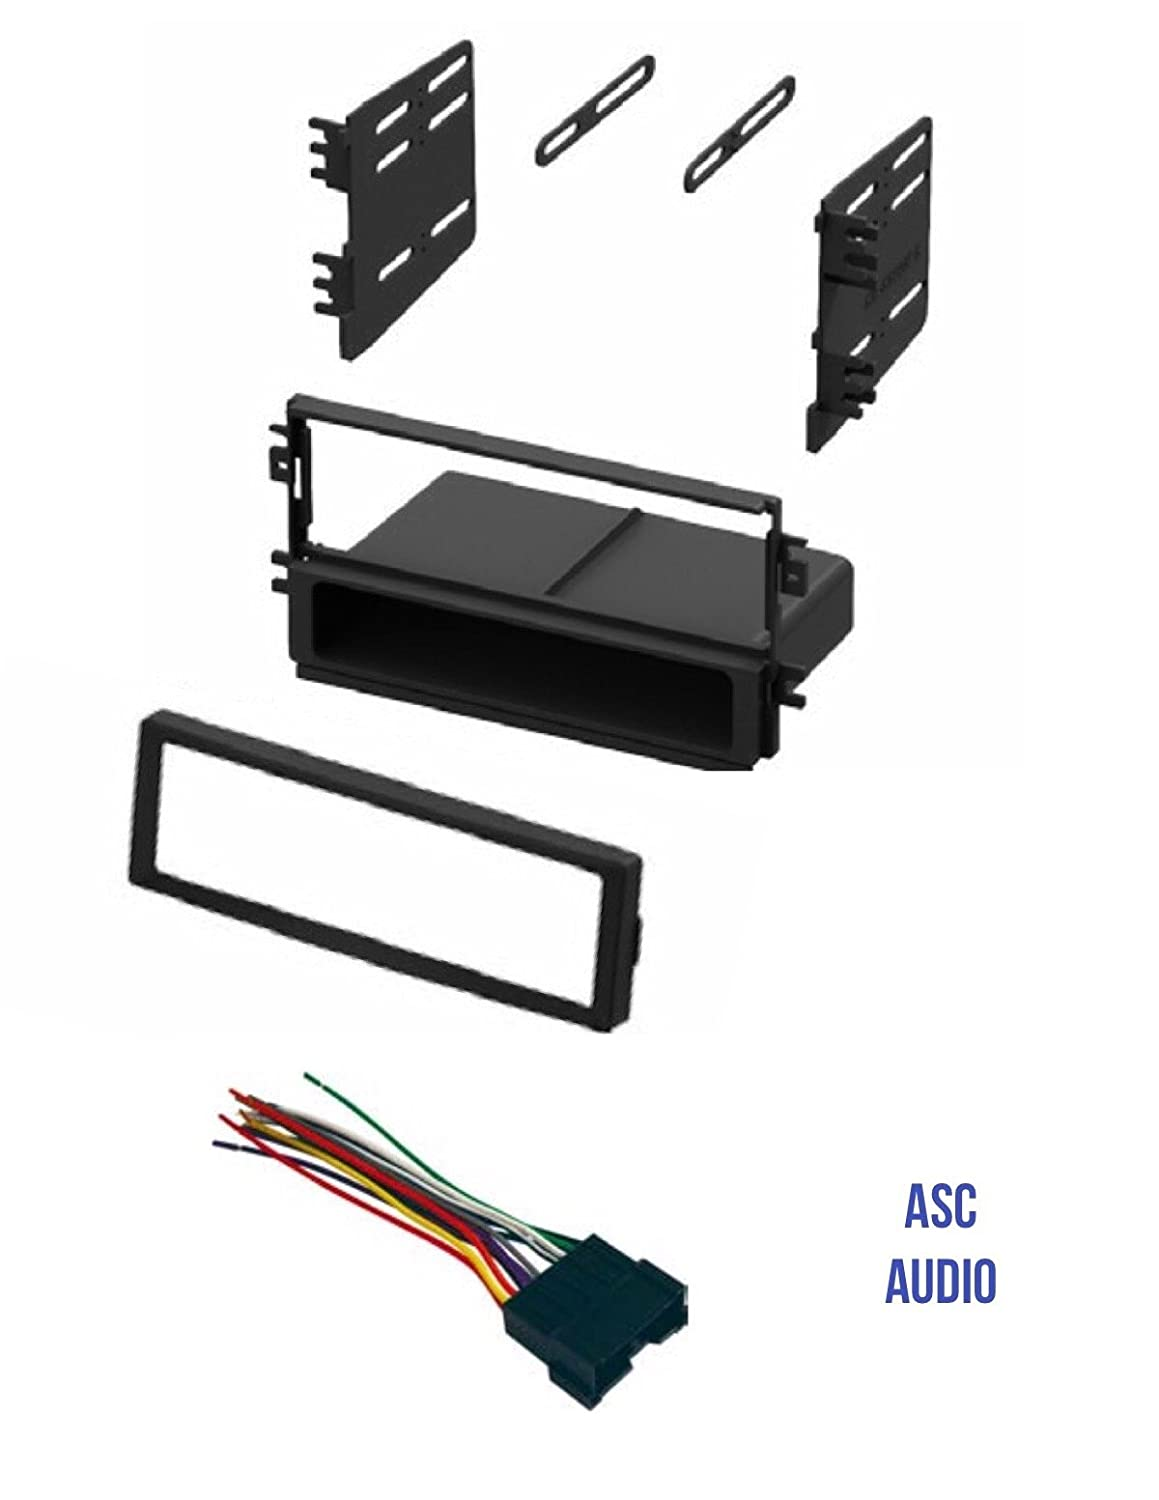 61KYi7ITzqL._SL1500_ amazon com asc audio car stereo radio dash kit and wire harness  at bayanpartner.co